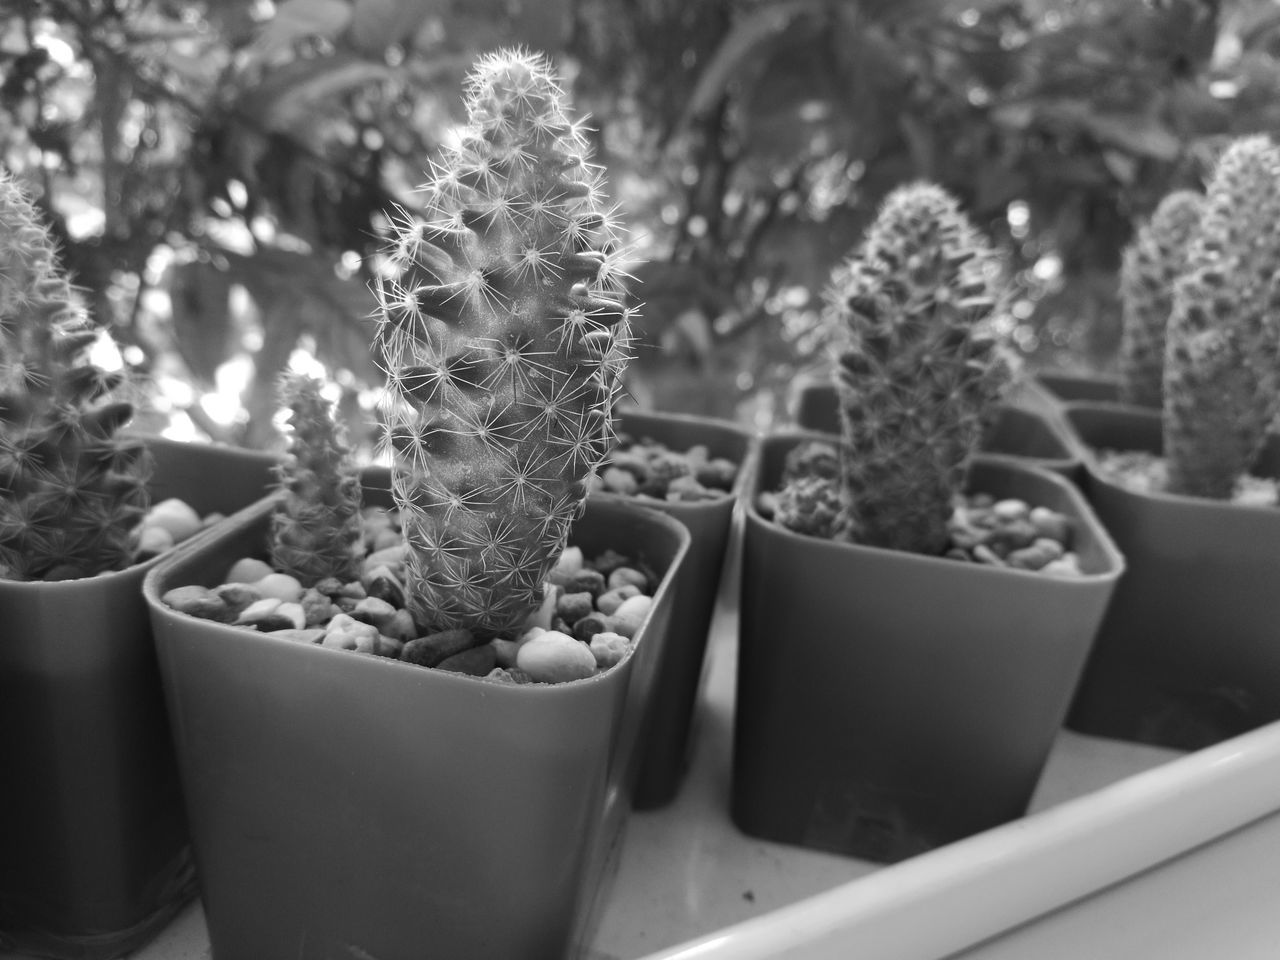 cactus, growth, plant, thorn, potted plant, no people, nature, spiked, day, close-up, outdoors, beauty in nature, freshness